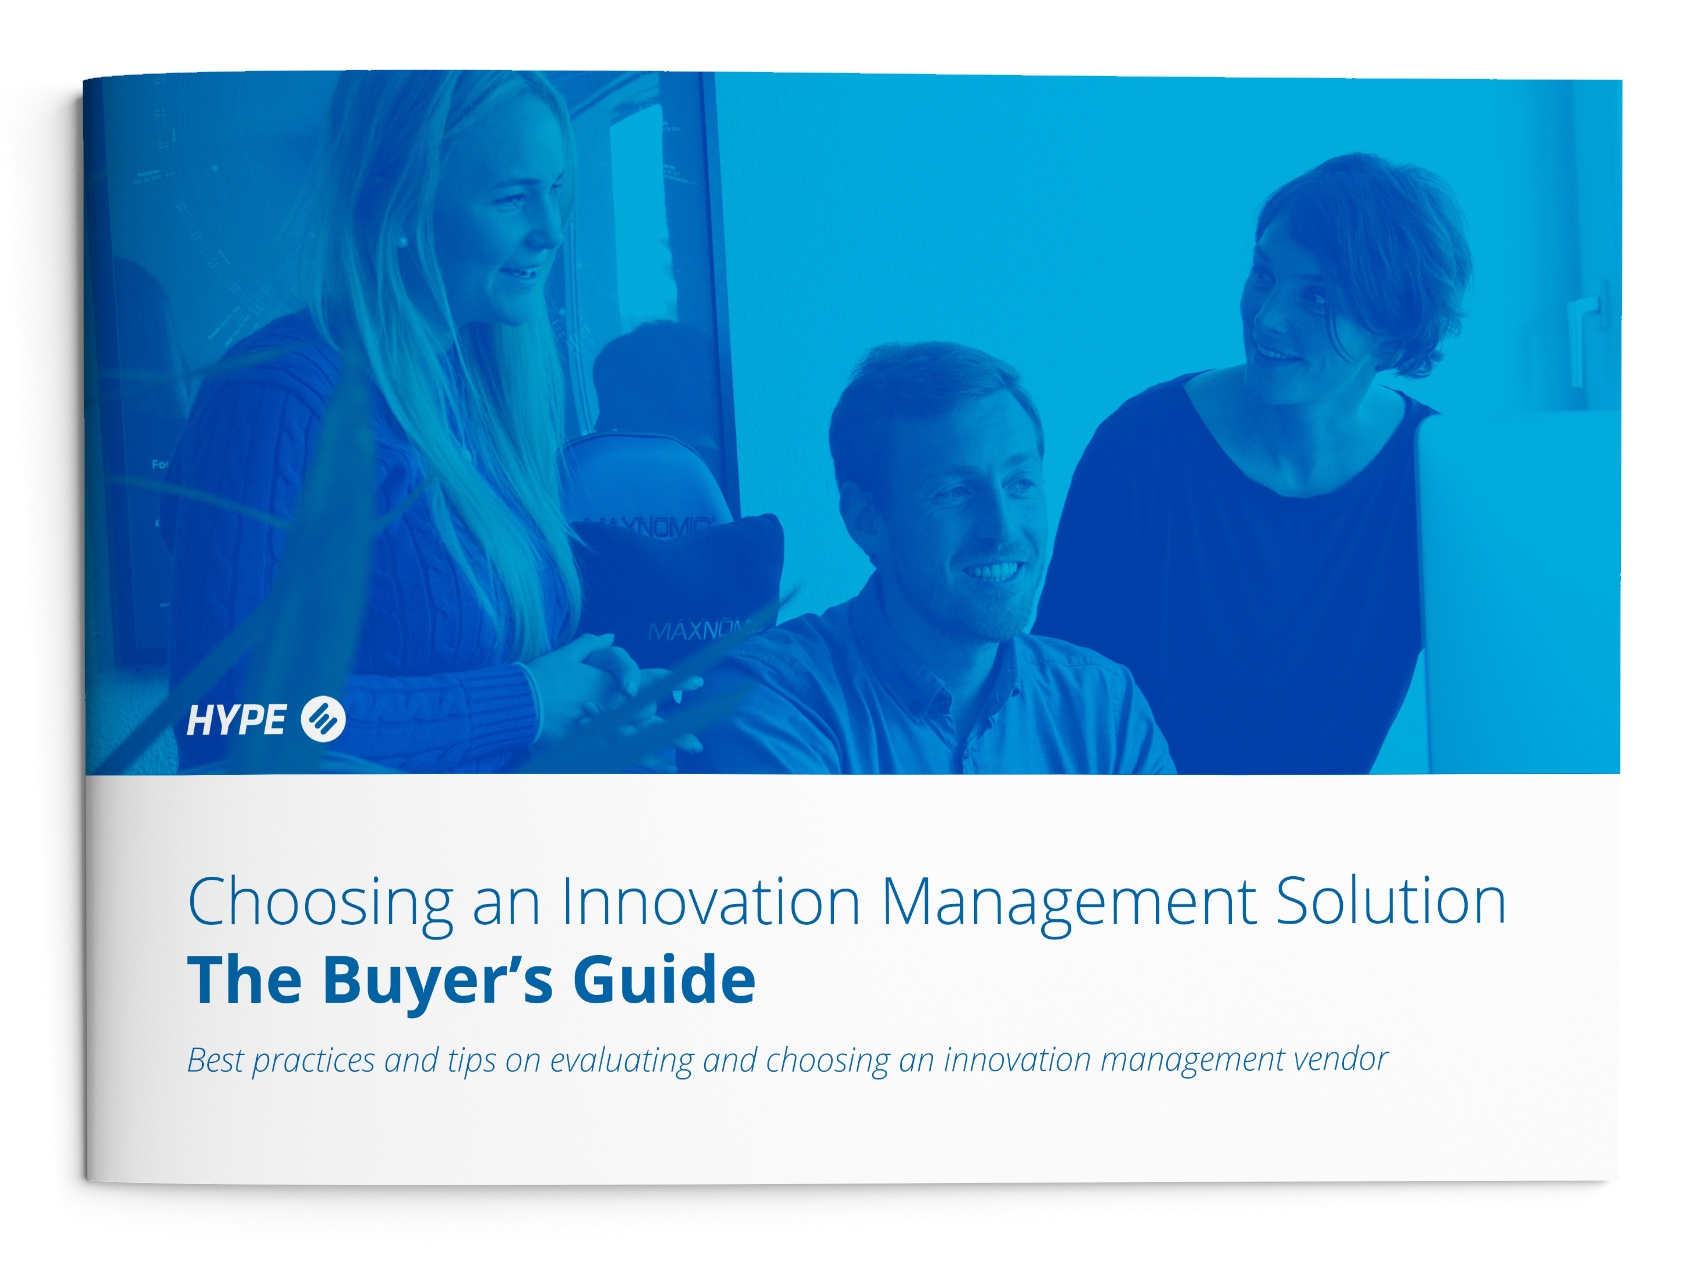 Mockup of the buyers' guide